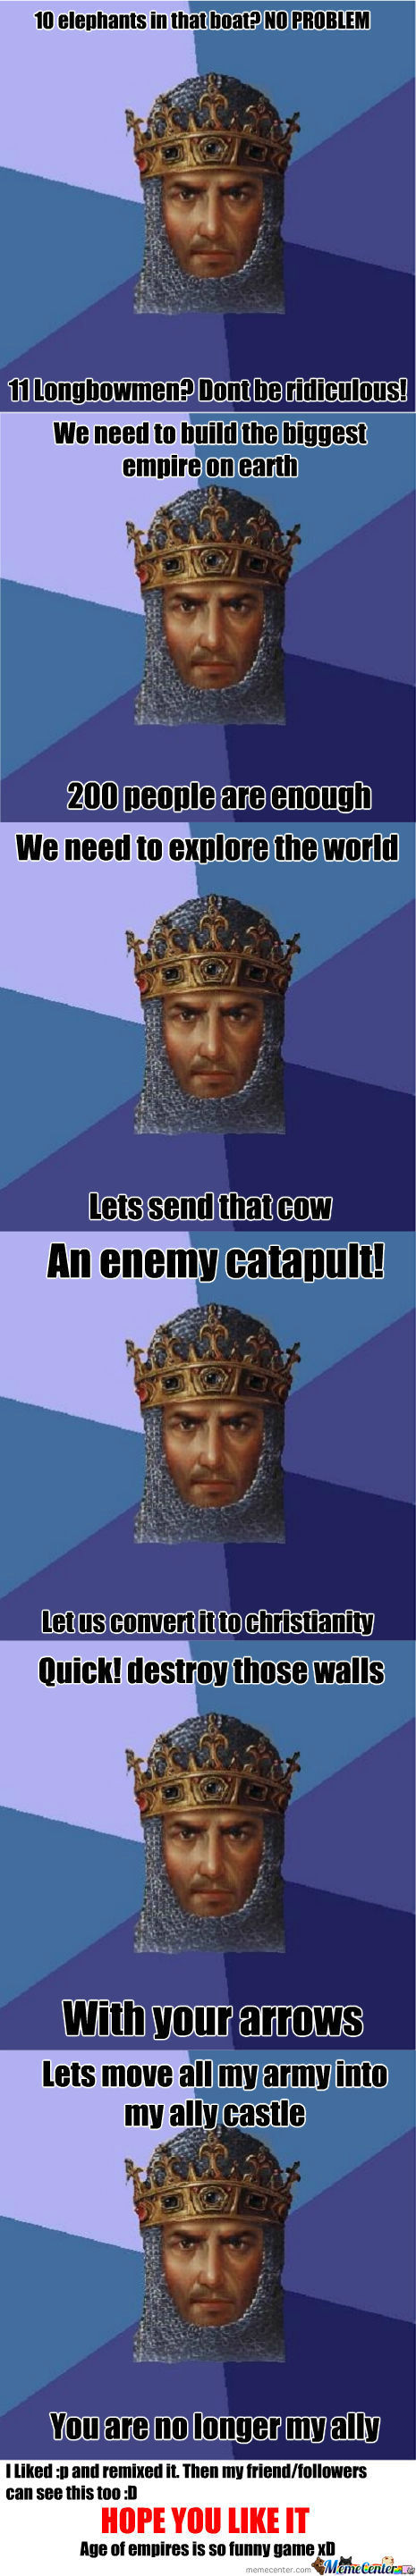 [RMX] Age Of Empires Meme Recopilation